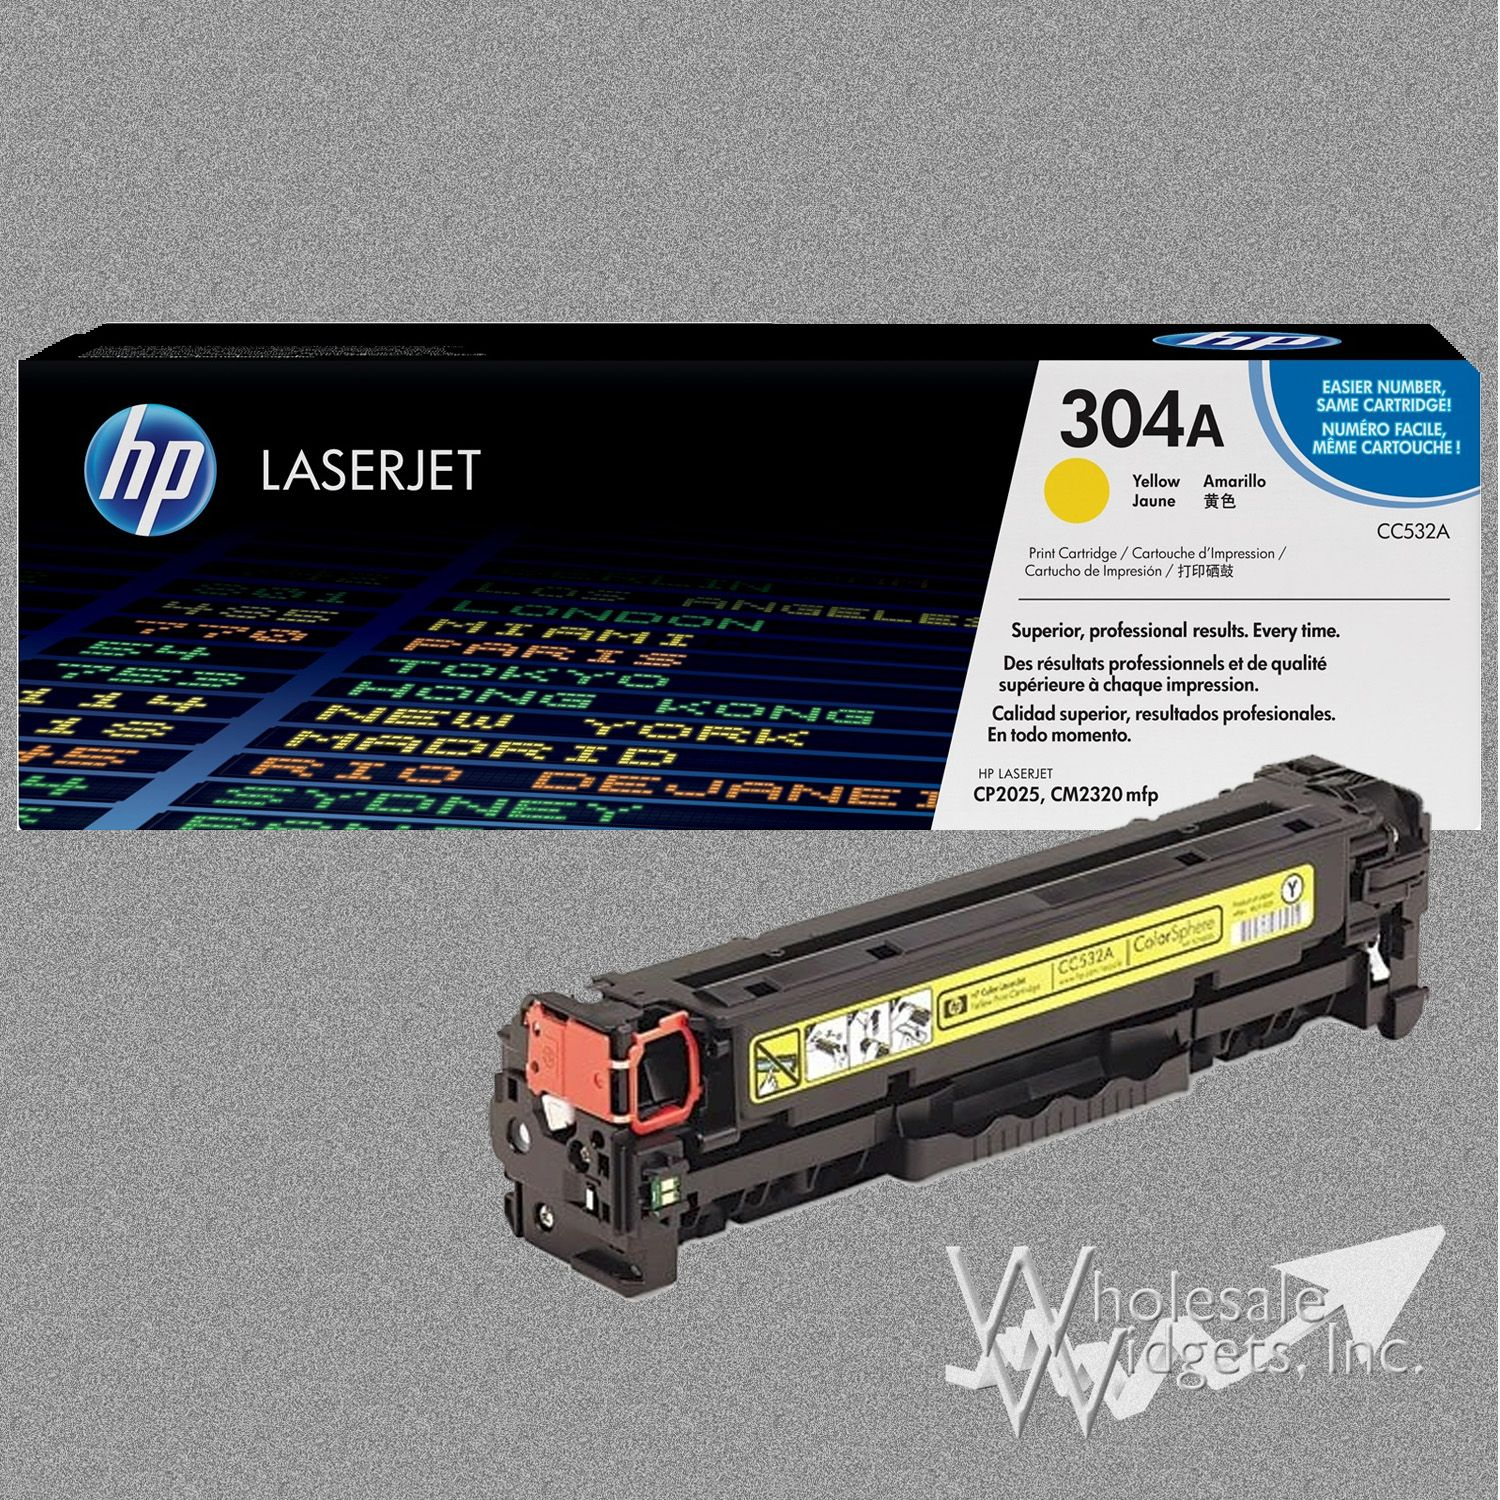 Hp 304a Yellow Toner For Use In Color Laserjet Cp4005 Cyan Cartridge Cb401a Cm2320 Mfp